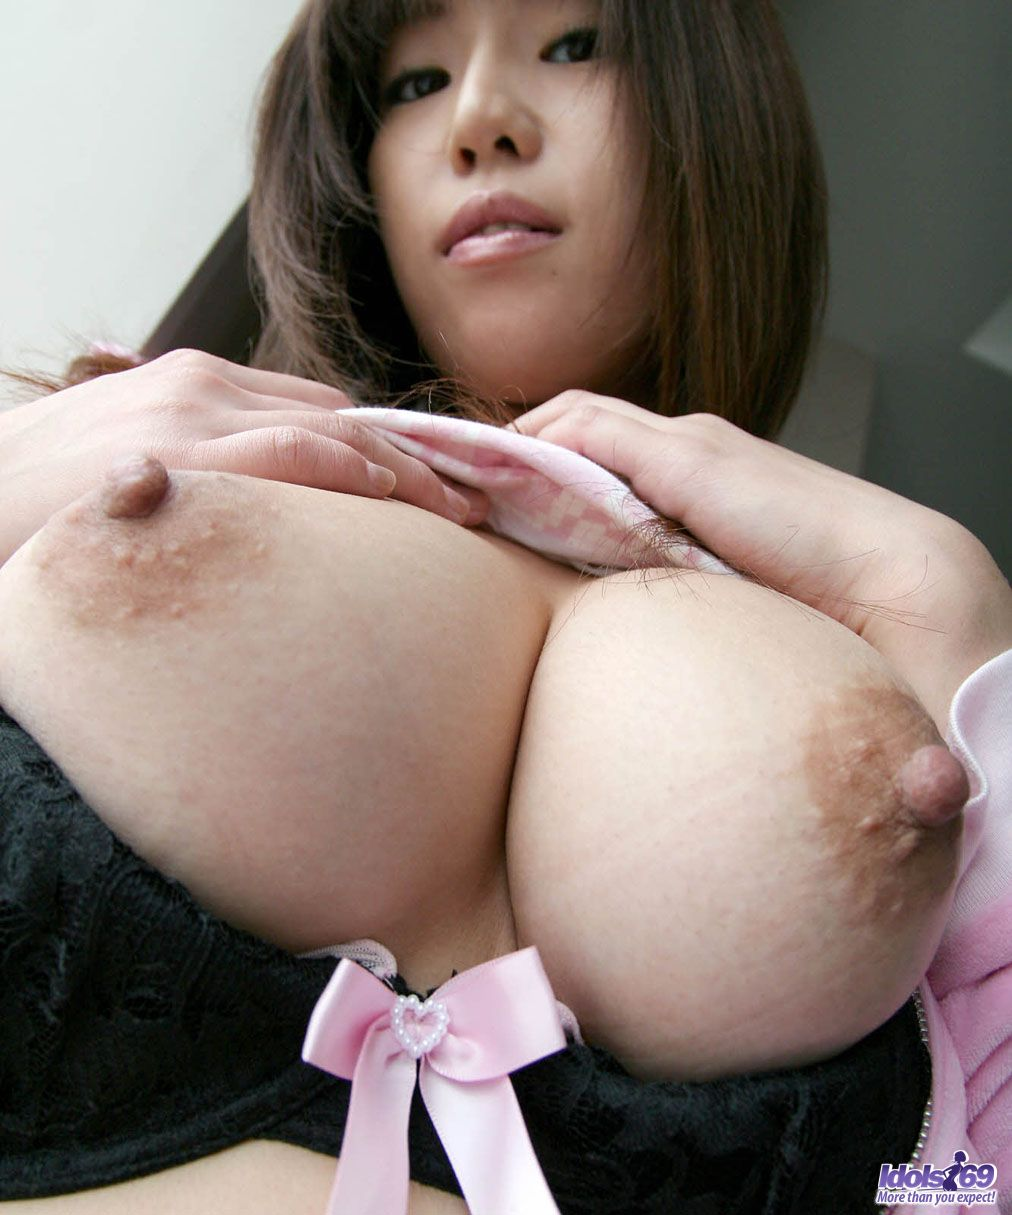 large nipples areola